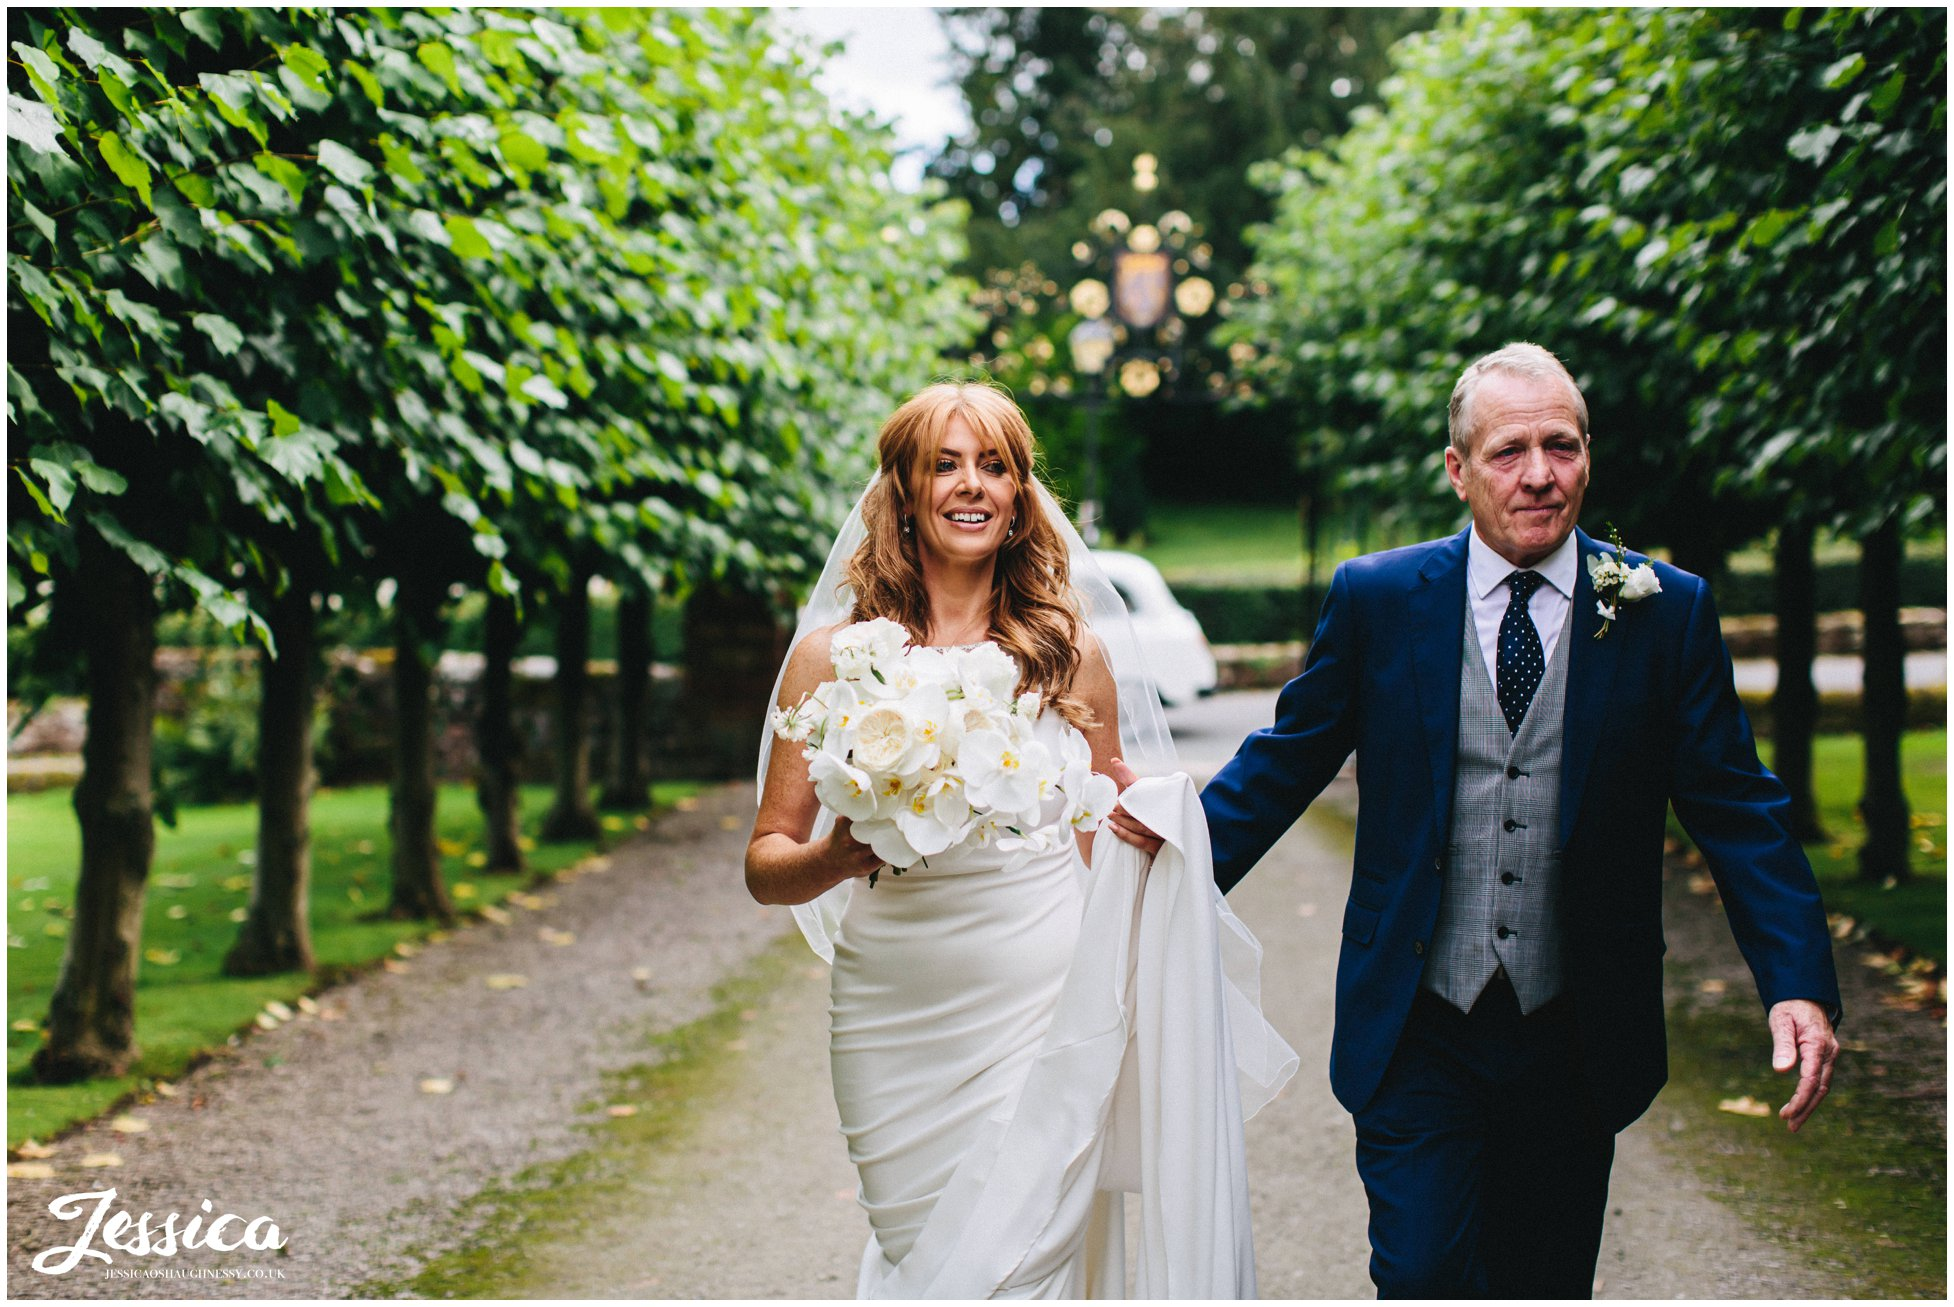 the bride & her father walk down the church path